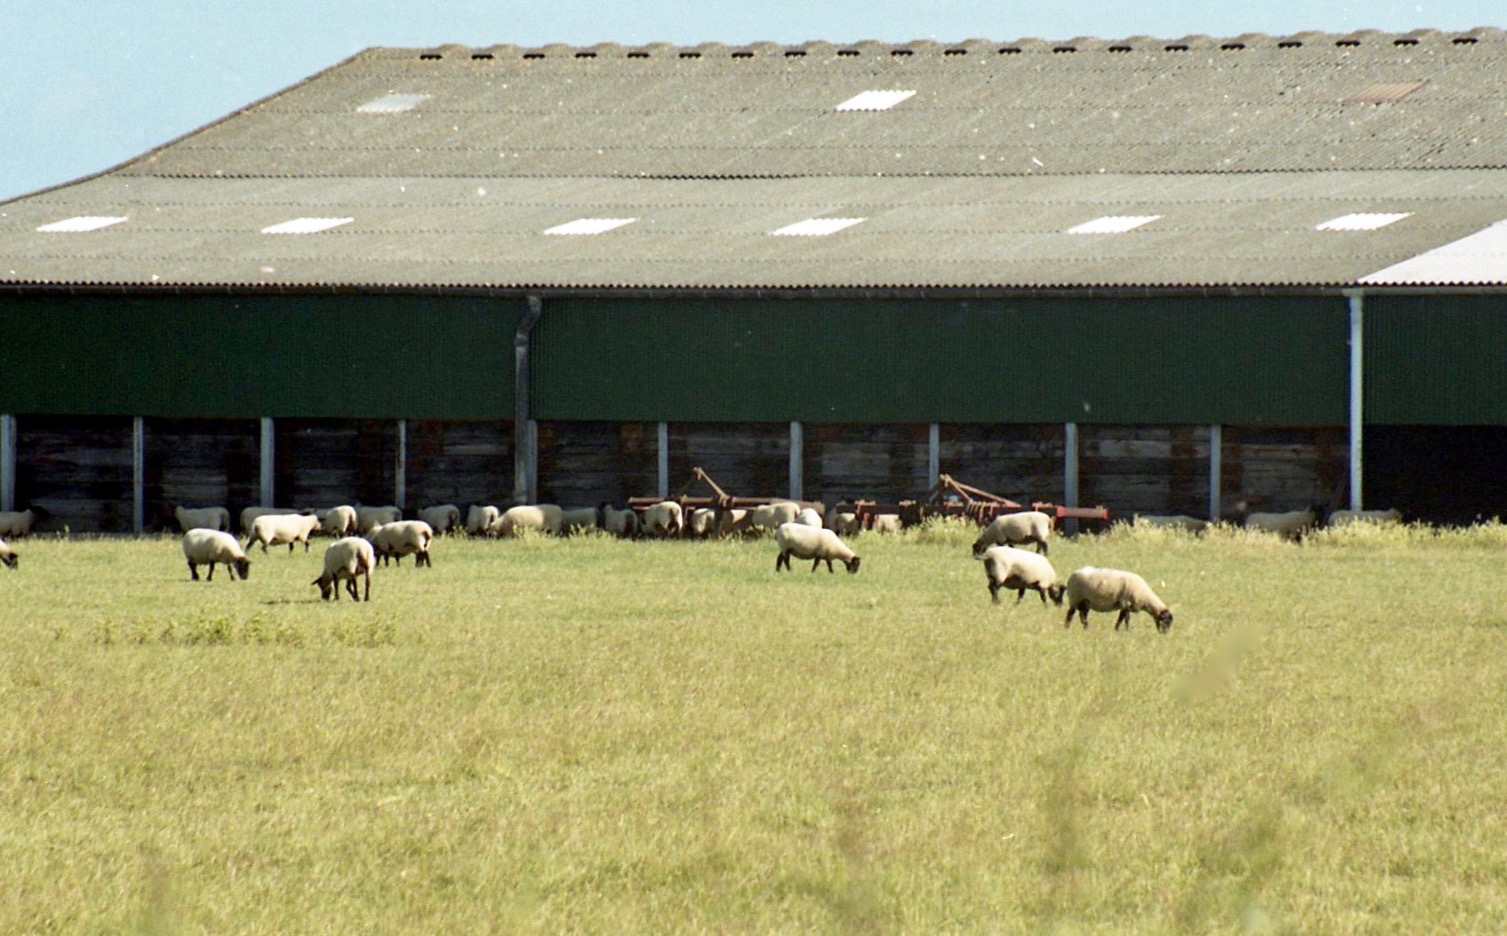 Sheep and farm buildings 7.03